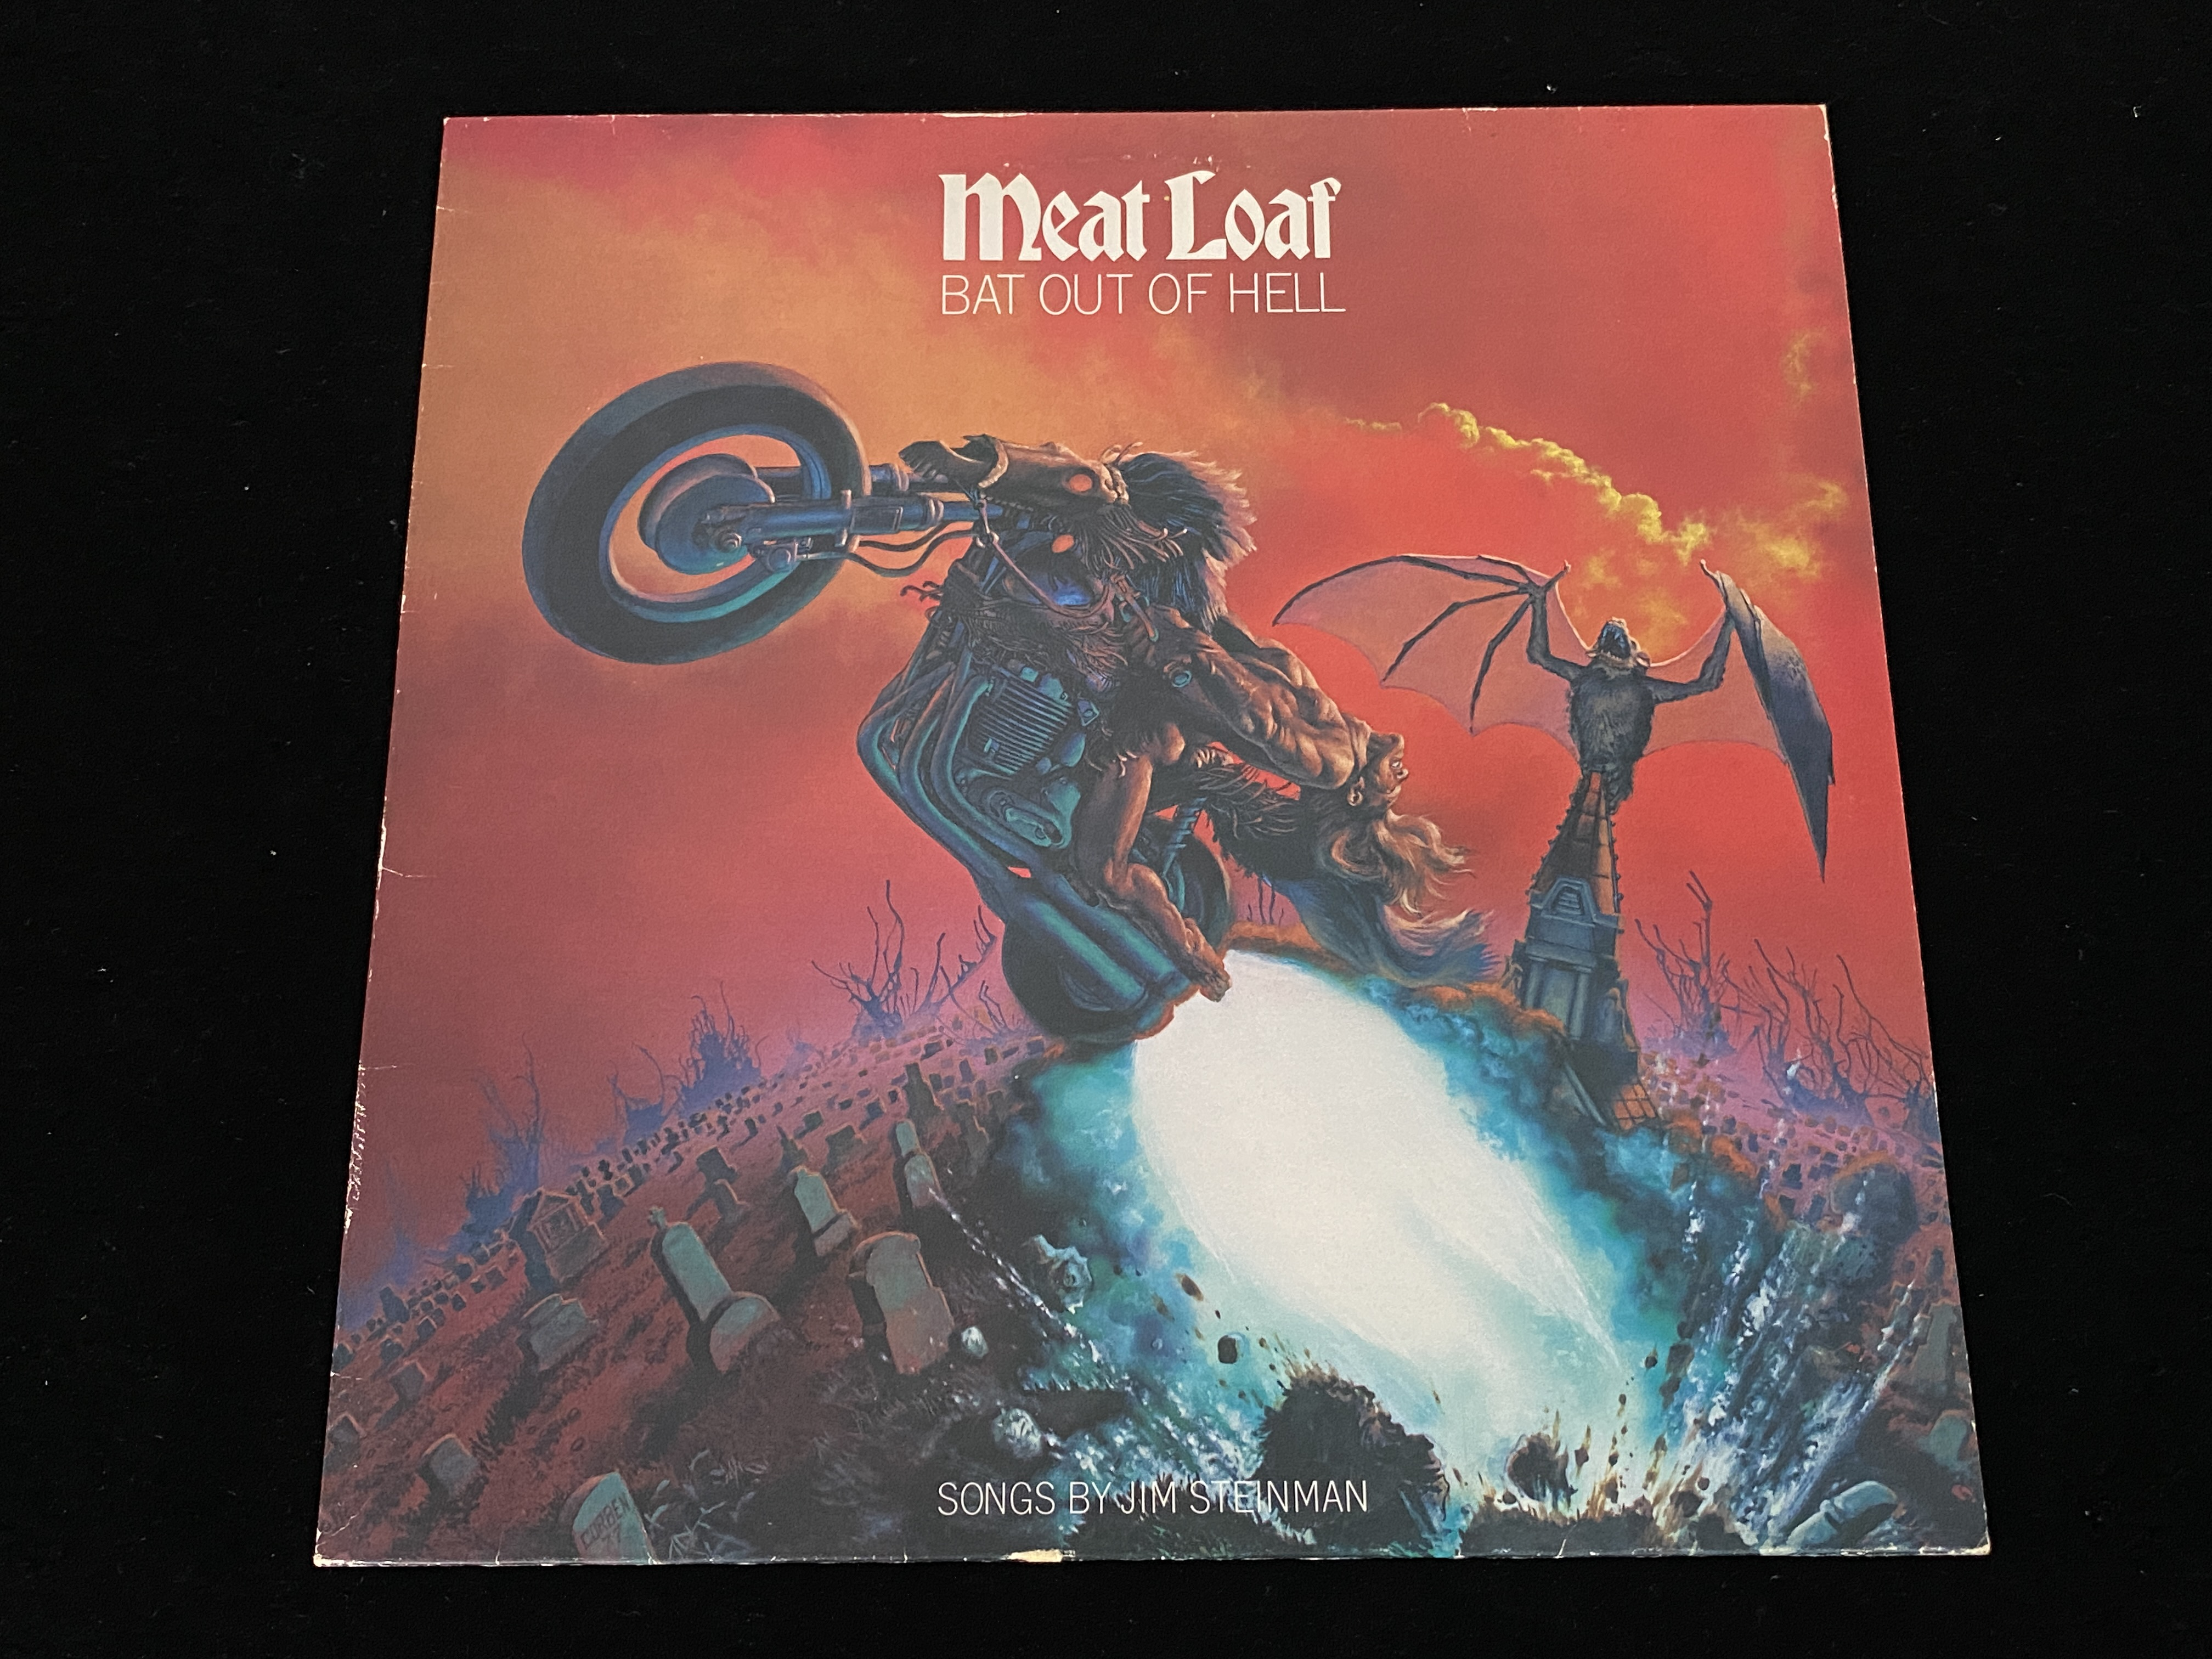 Meat Loaf - Bat Out of Hell (EU, 1977)